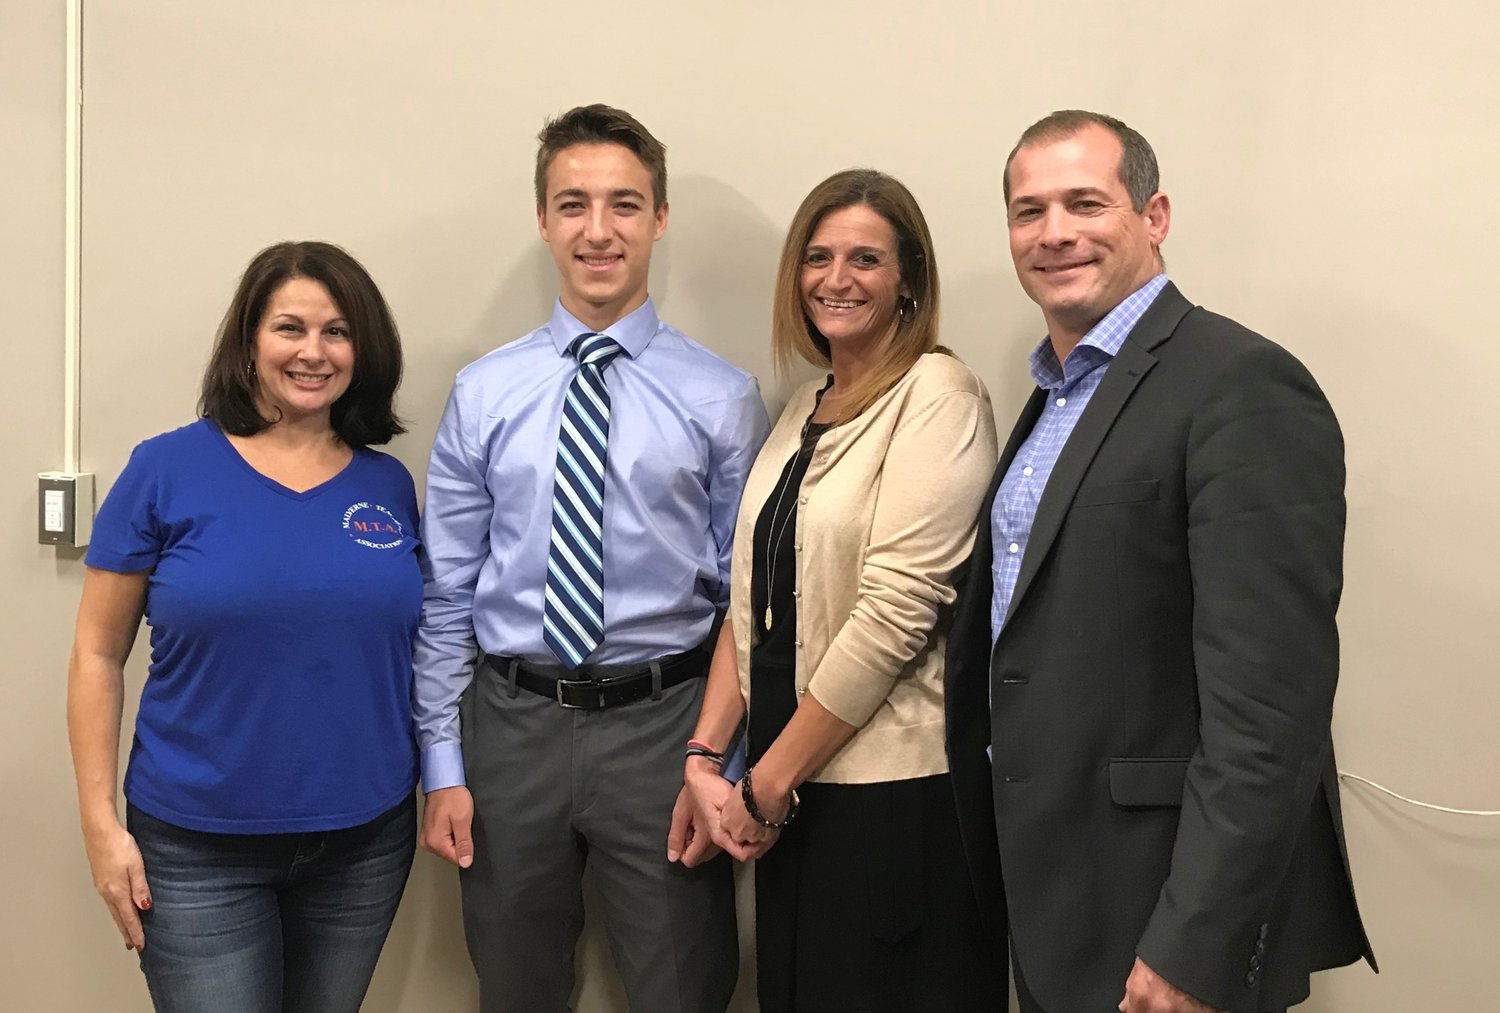 Malverne High School senior Jack Cecere second from left, was recognized by guidance counselor Laura Pulitano, left, Director of Guidance for kindergarten through 12th grade Rebecca Gottesman and MHS Principal Dr. Vincent Romano for being named a 2018-19 National Hispanic Recognition Scholar.